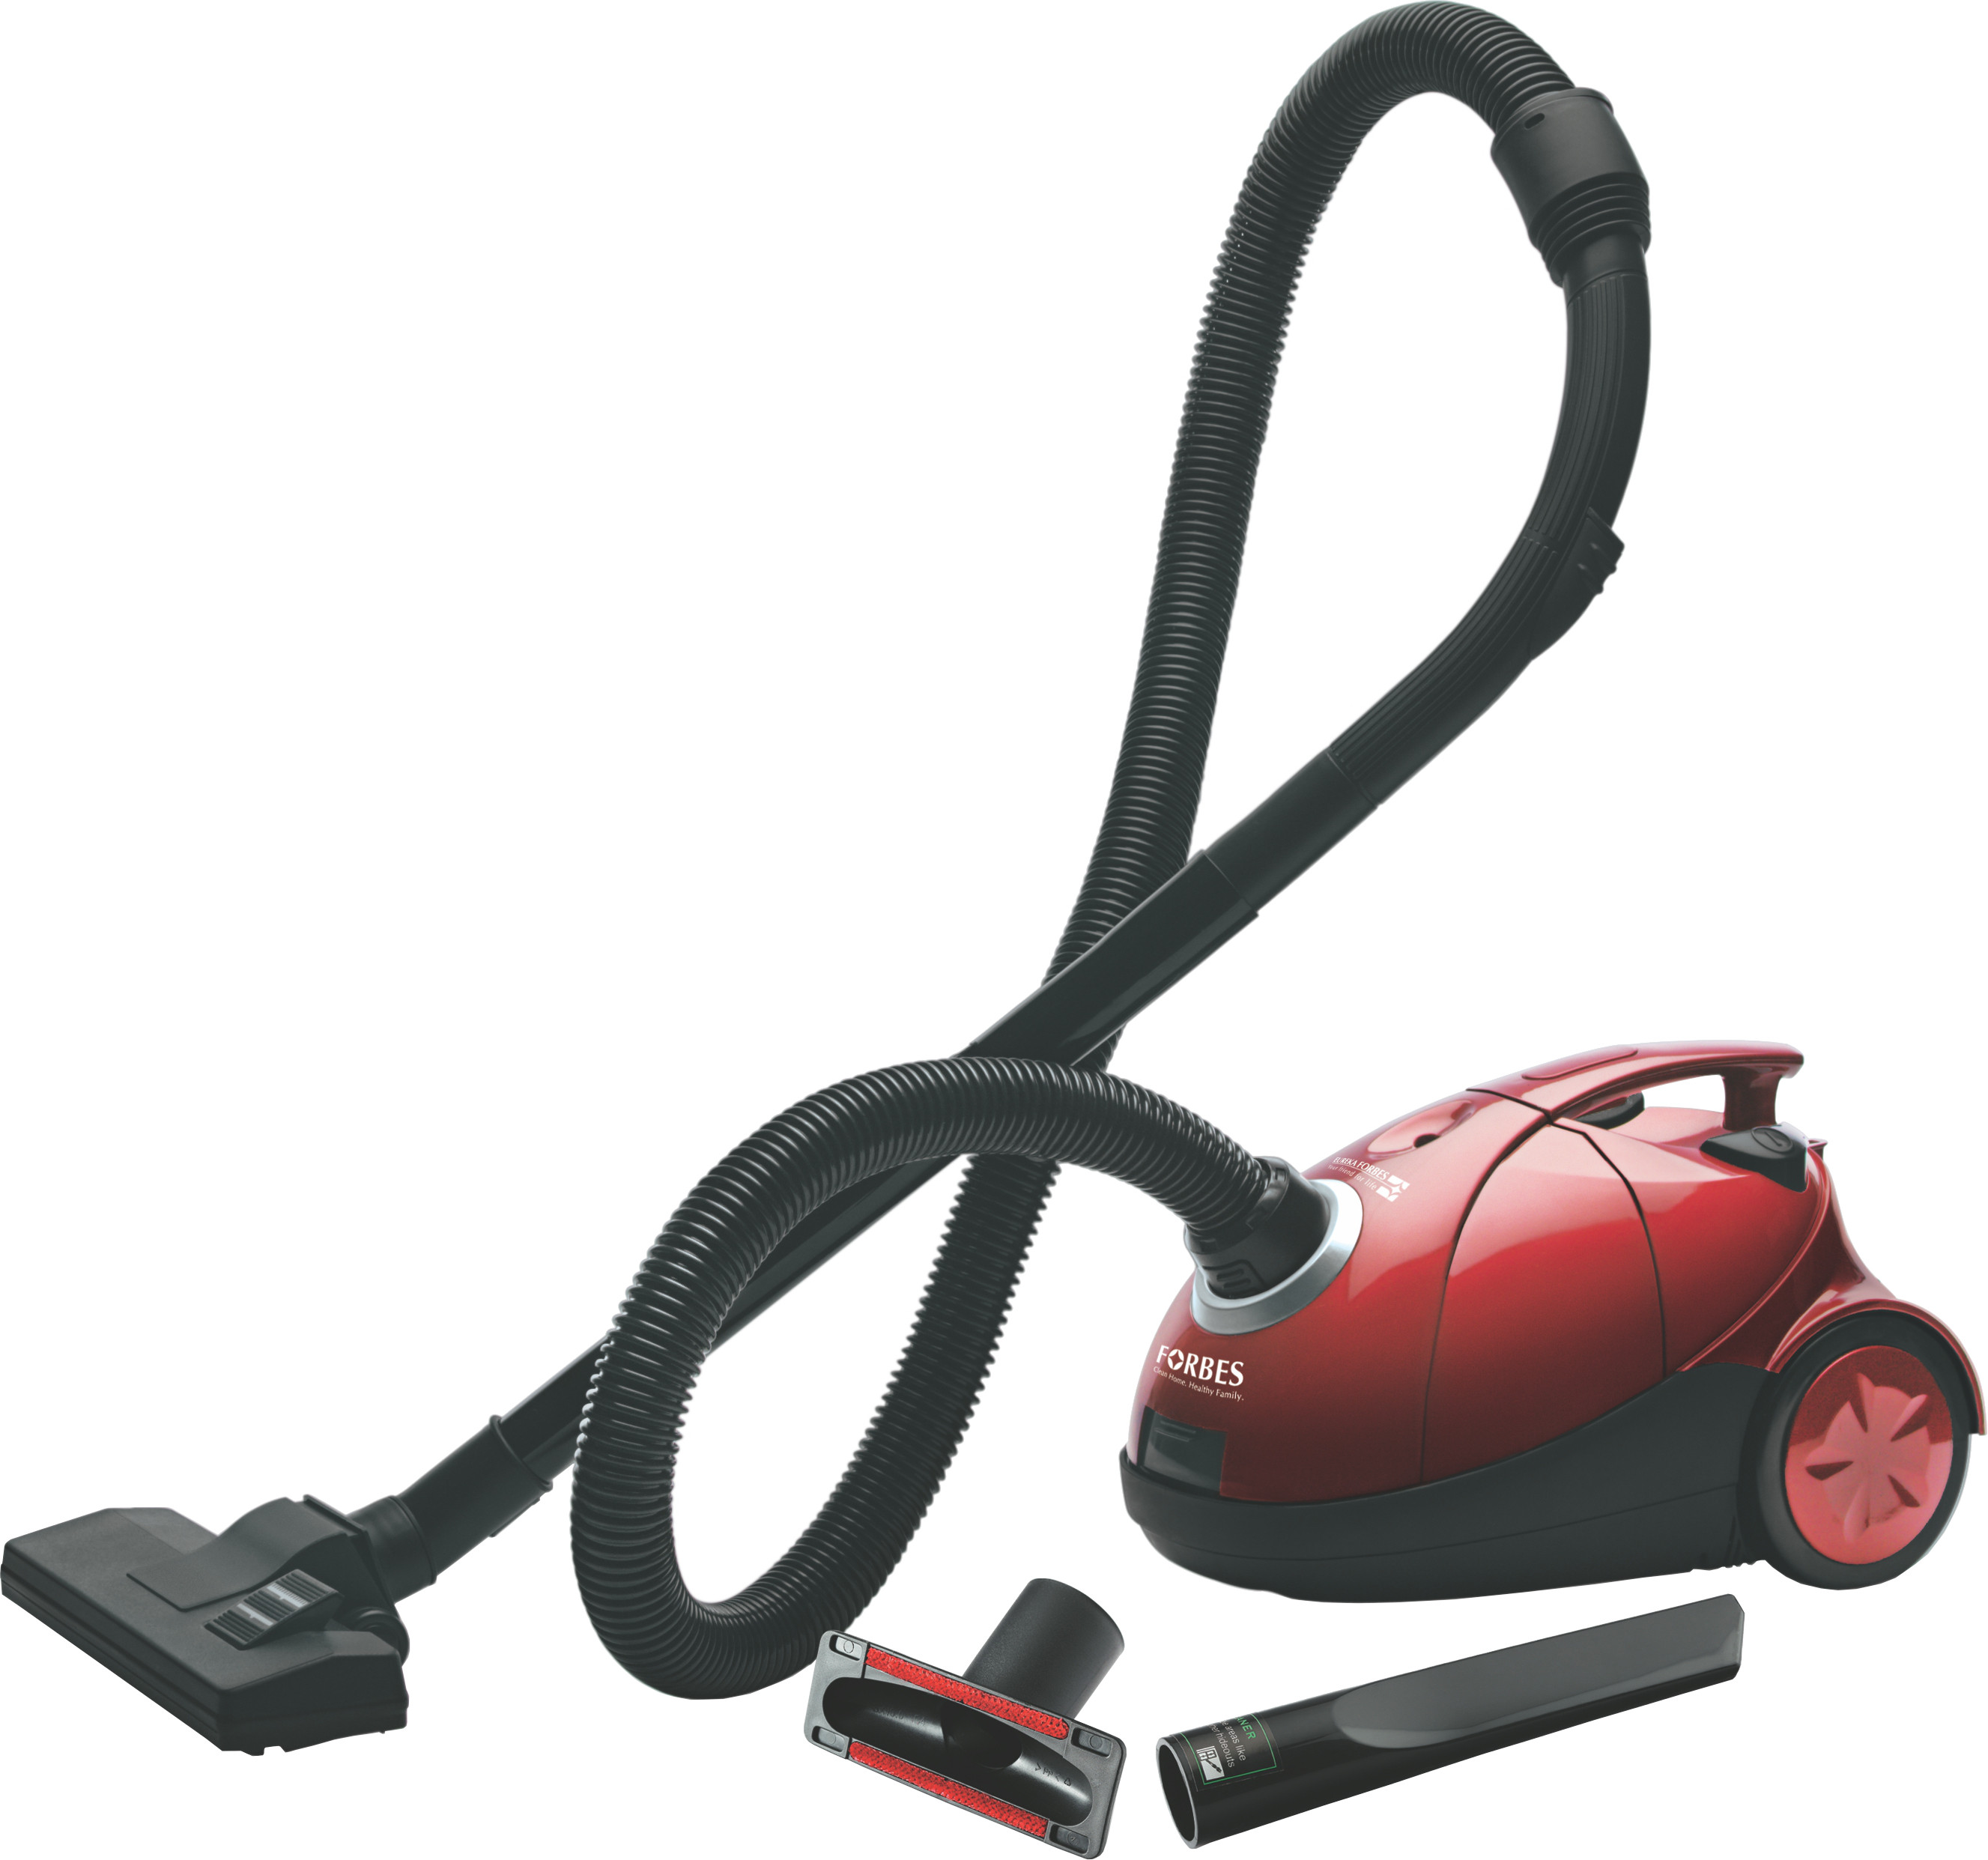 Eureka Forbes Quick Clean Dx Vacuum Cleaner Price In India